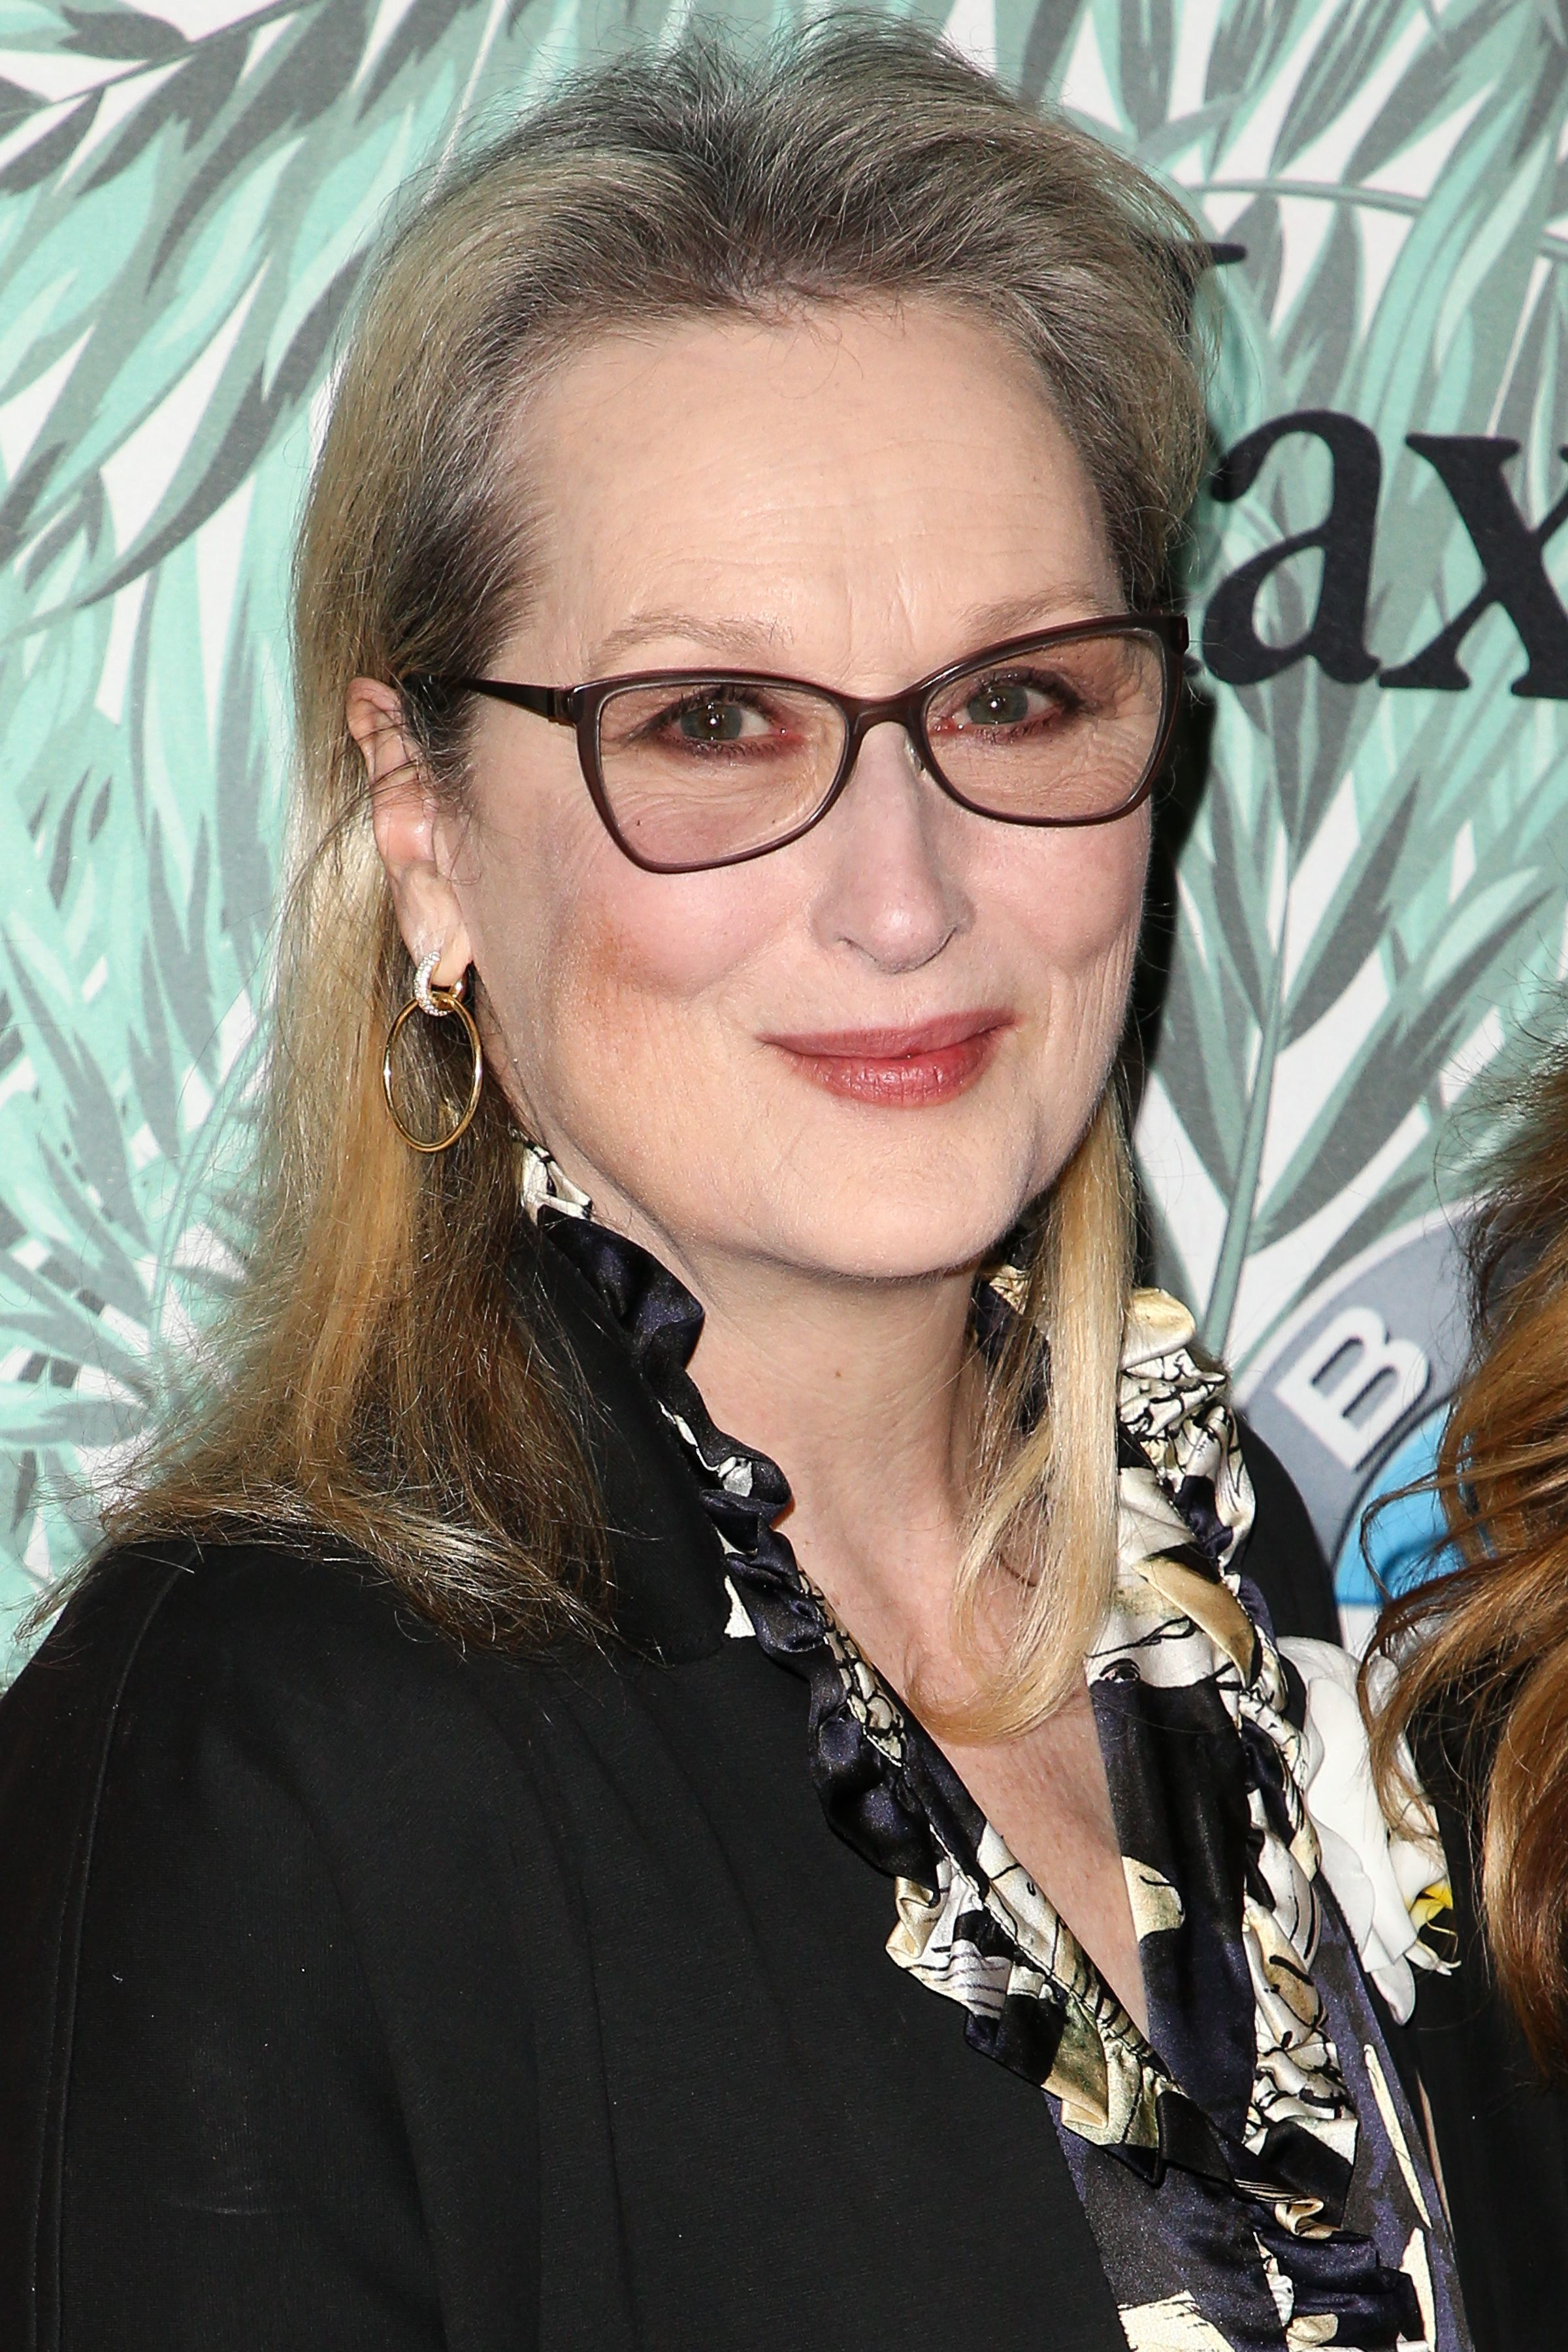 Meryl Streep arrives at the Women in Film cocktail party in Los Angeles on Feb. 24, 2017.